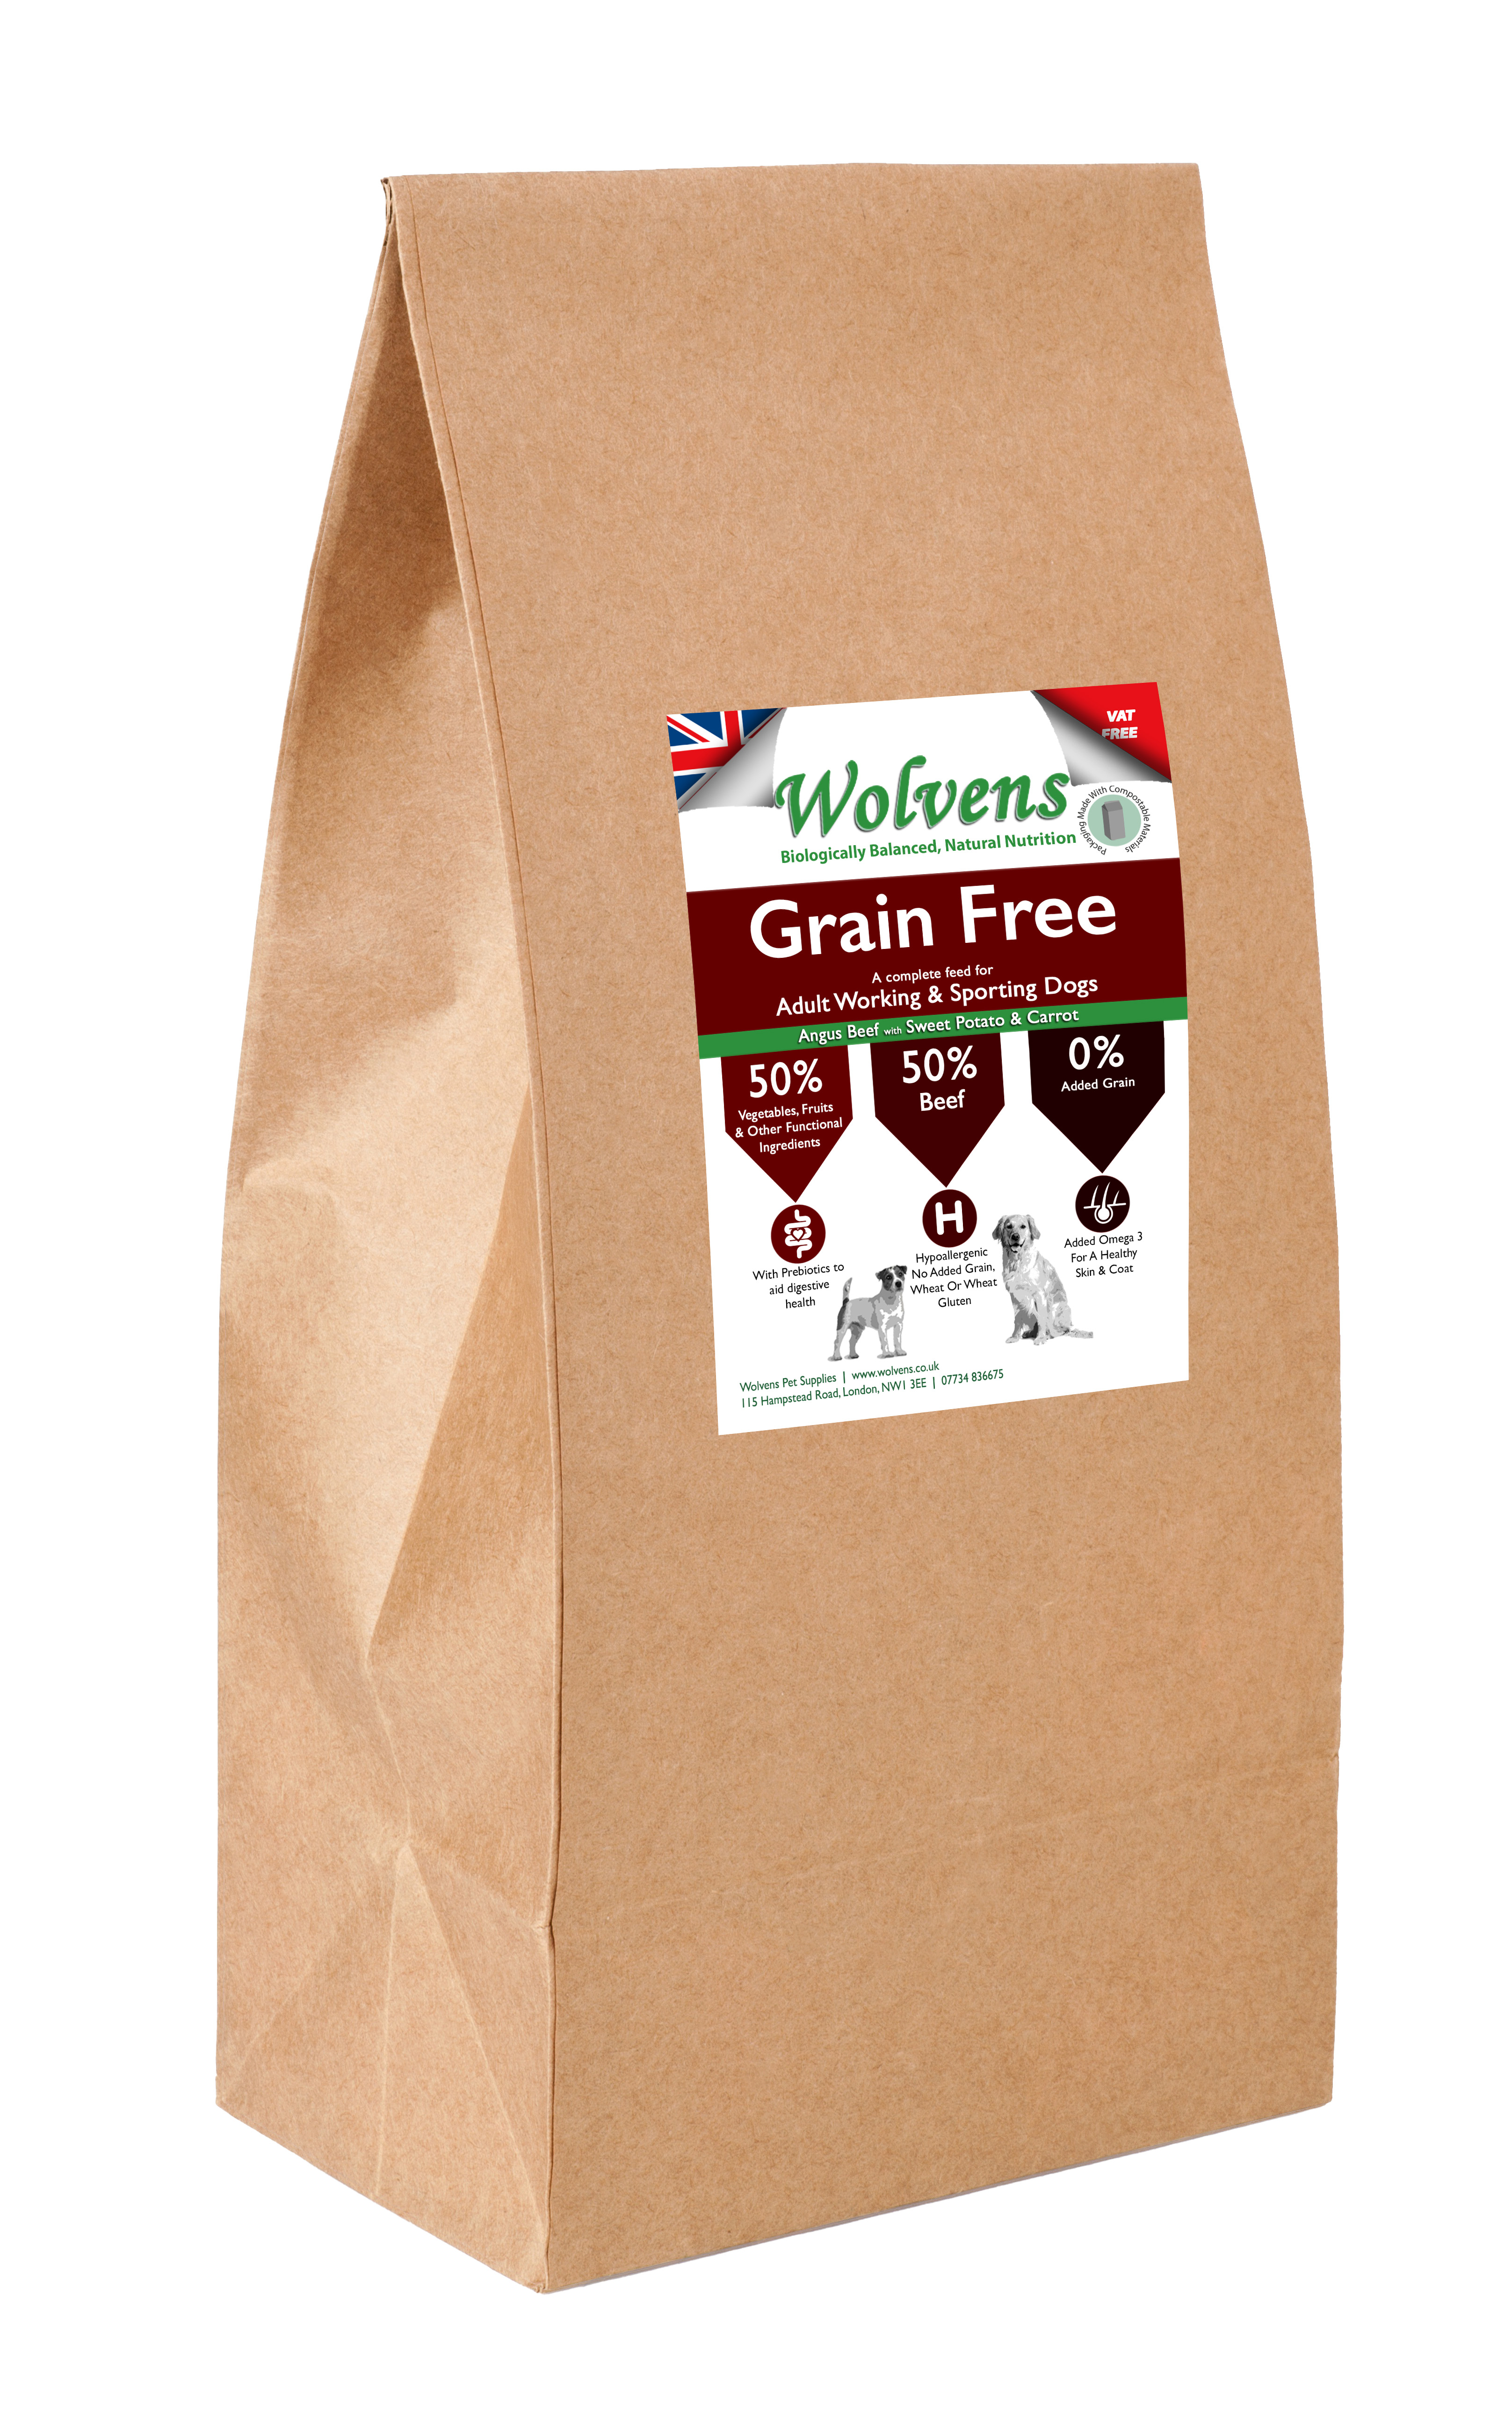 Wolvens Grain Free Dog Food. Beef